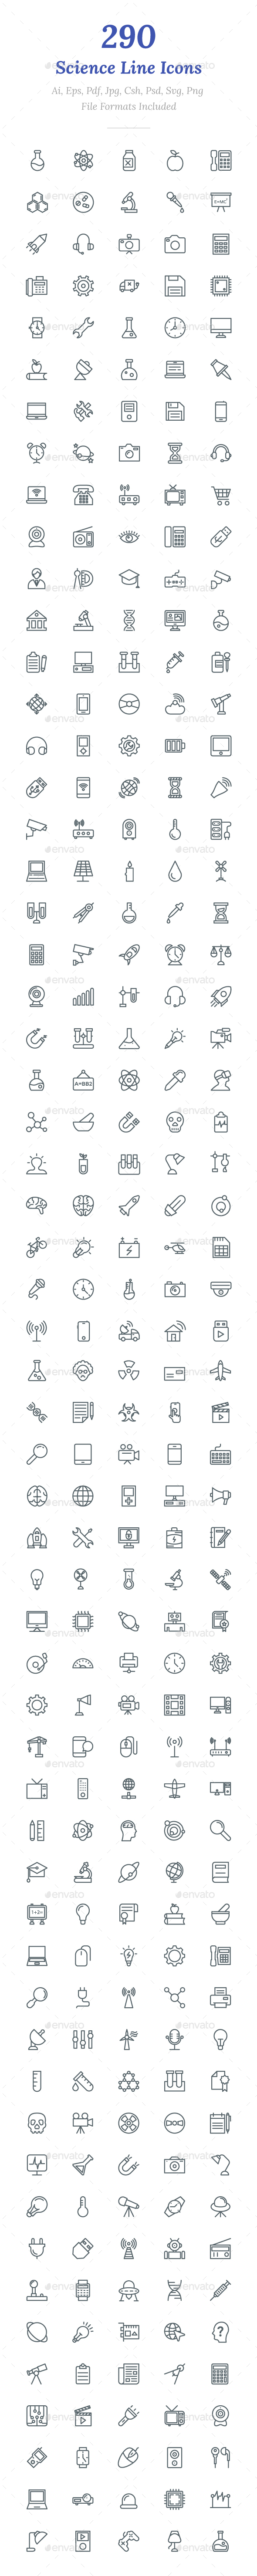 GraphicRiver 290 Science Line Icons 20704094